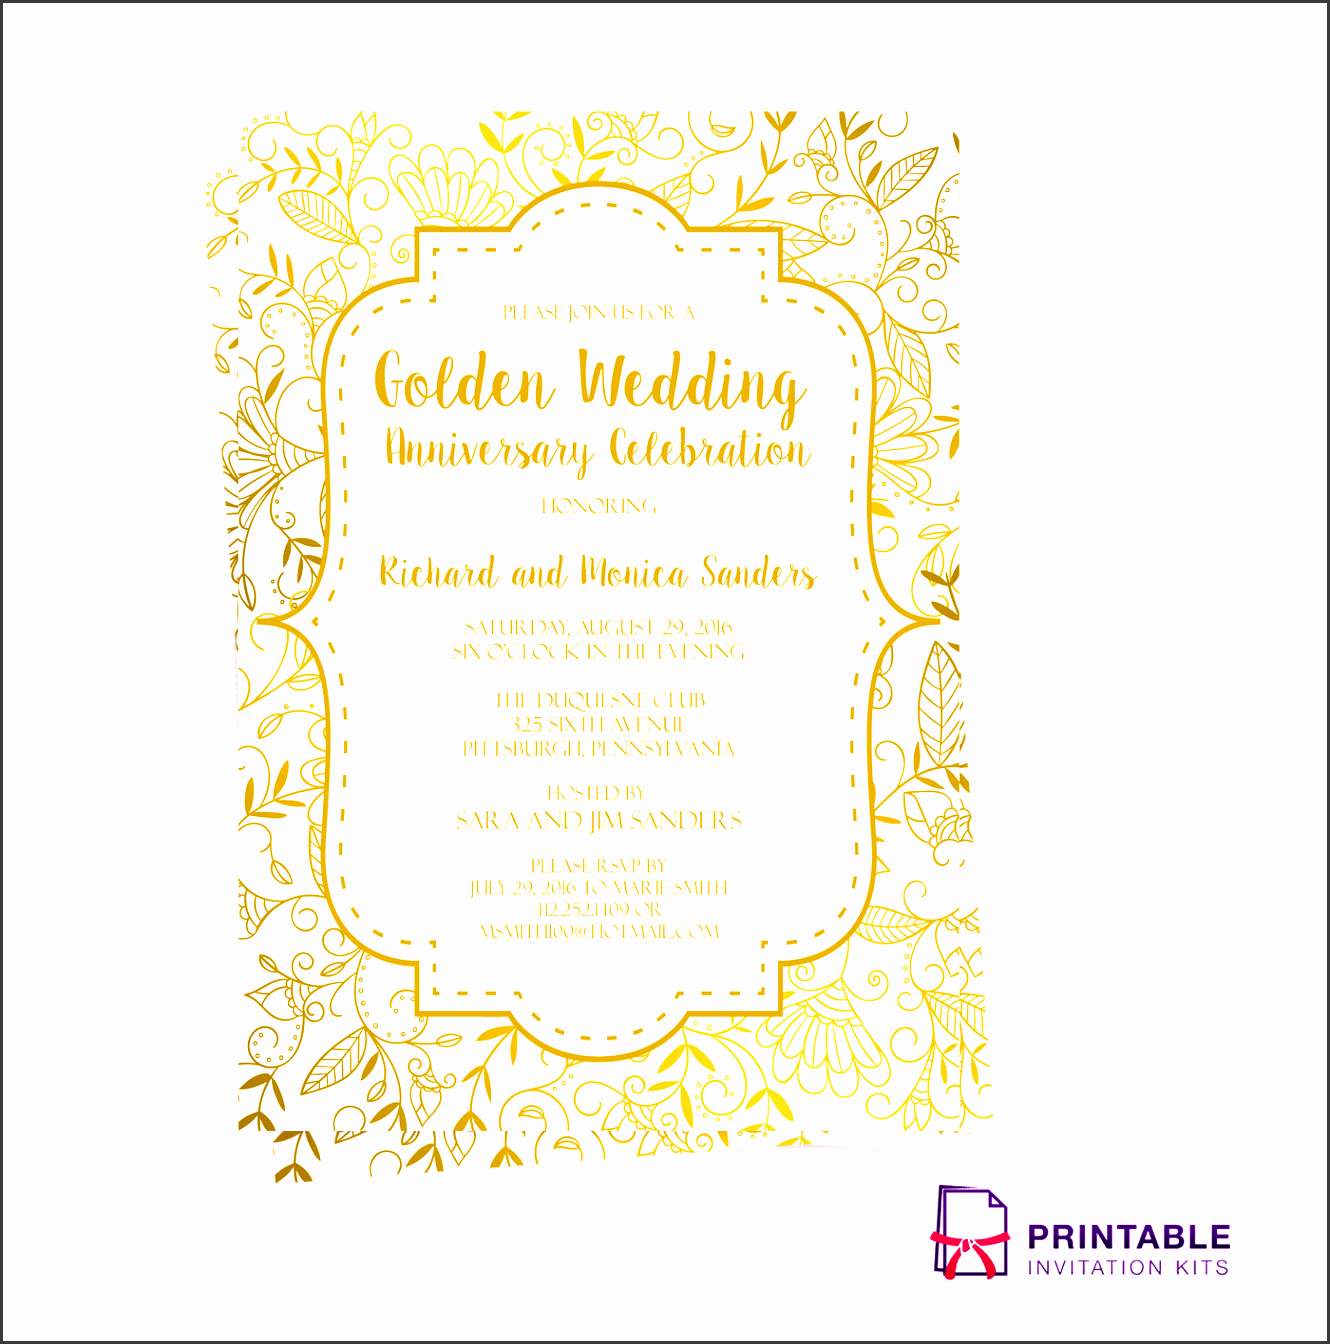 free pdf template golden wedding anniversary invitation template easy to edit and print at home